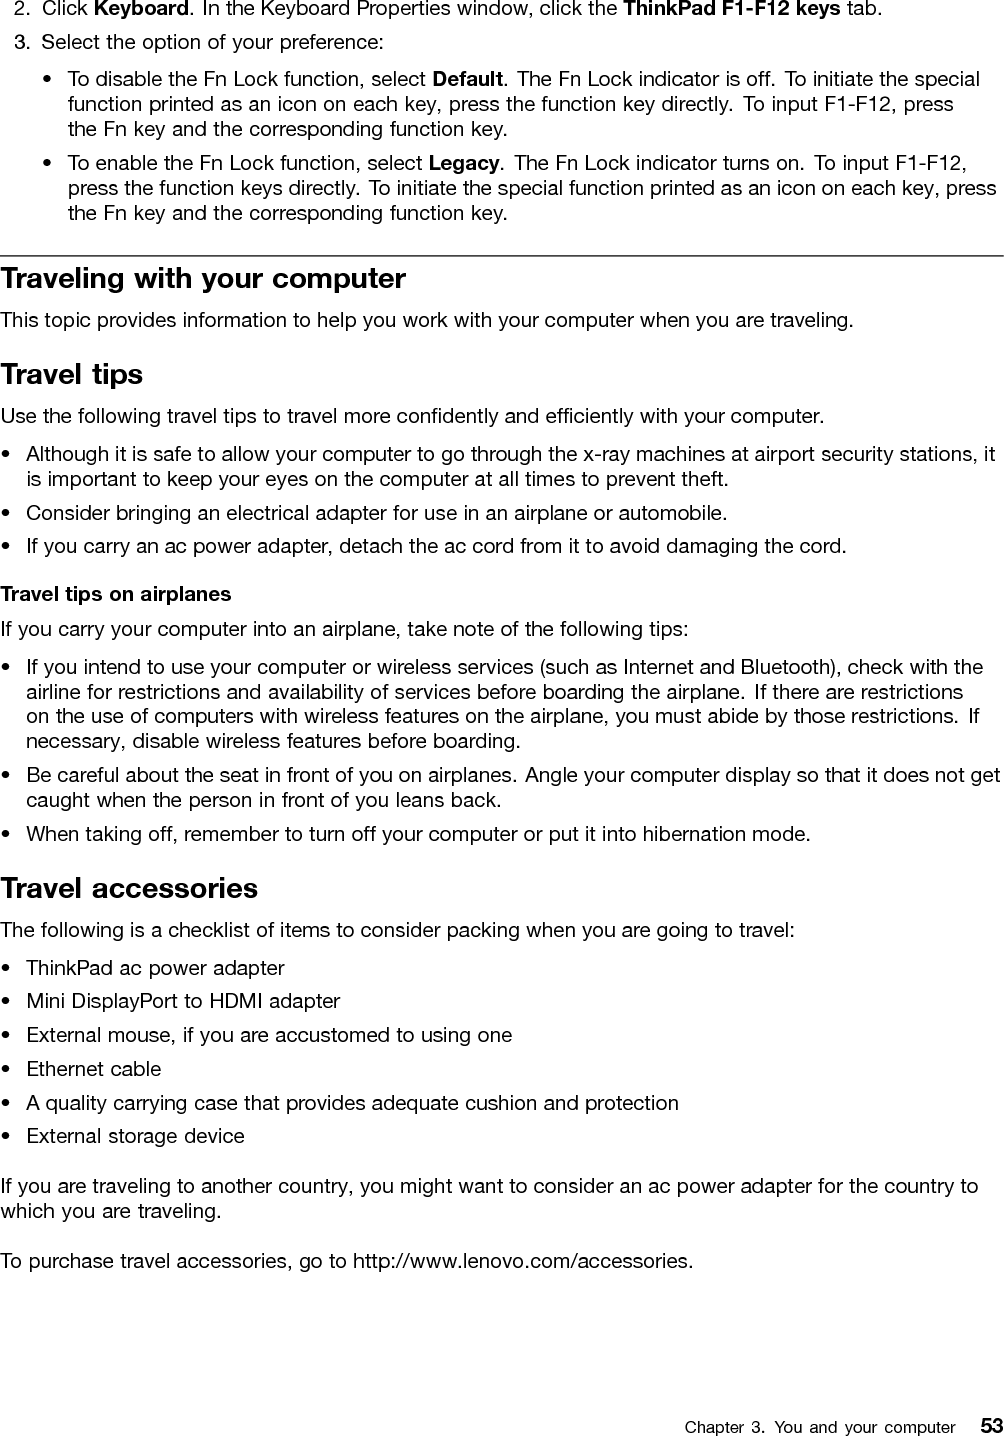 Lenovo T440 Ug En ThinkPad User Manual (English) Guide Laptop (Think